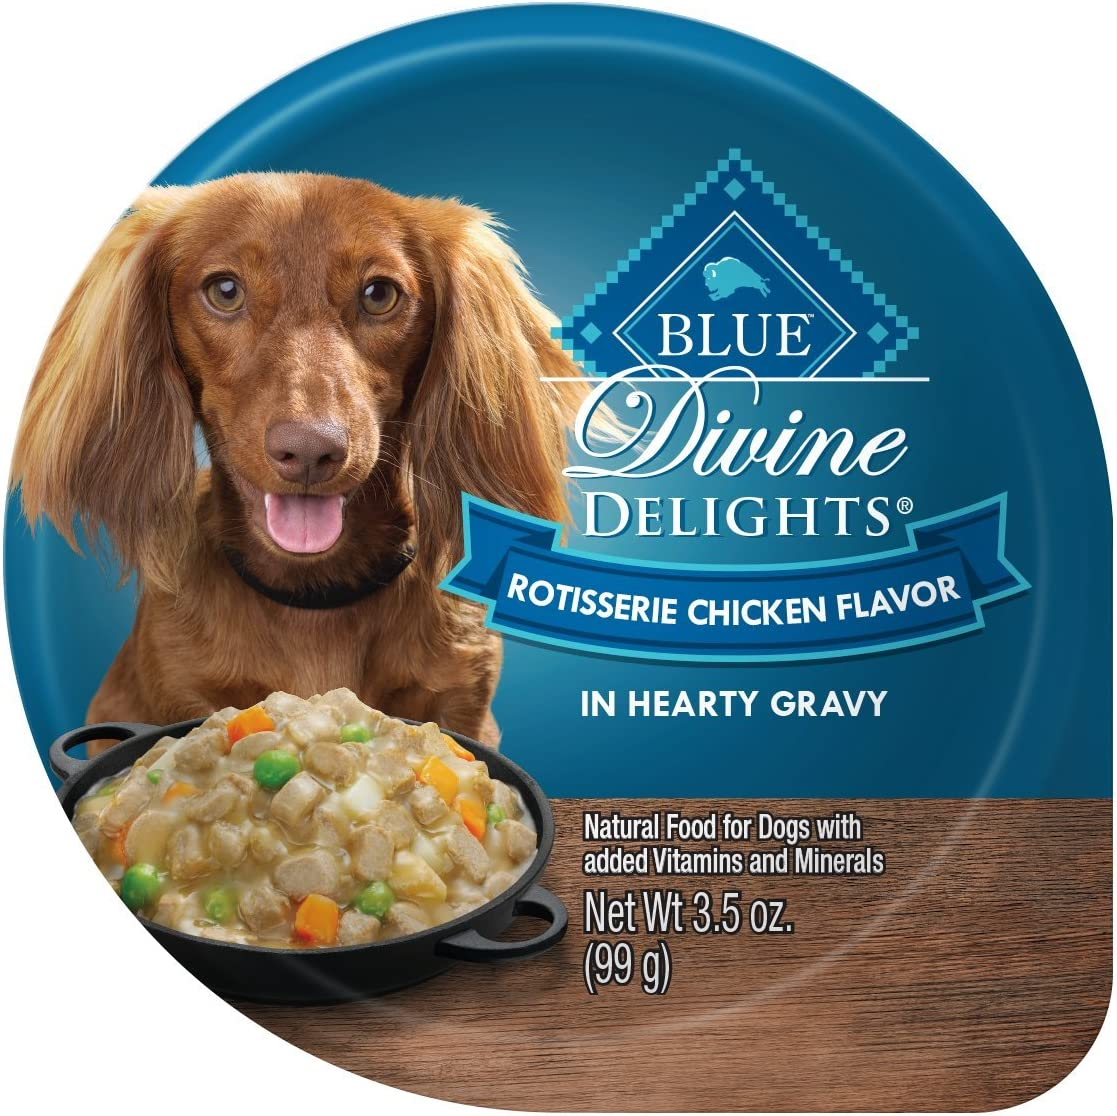 Blue Buffalo Divine Delights Natural Adult Small Breed Wet Dog Food, Rotisserie Chicken Flavor in Hearty Gravy 3.5-oz, 12 Pack